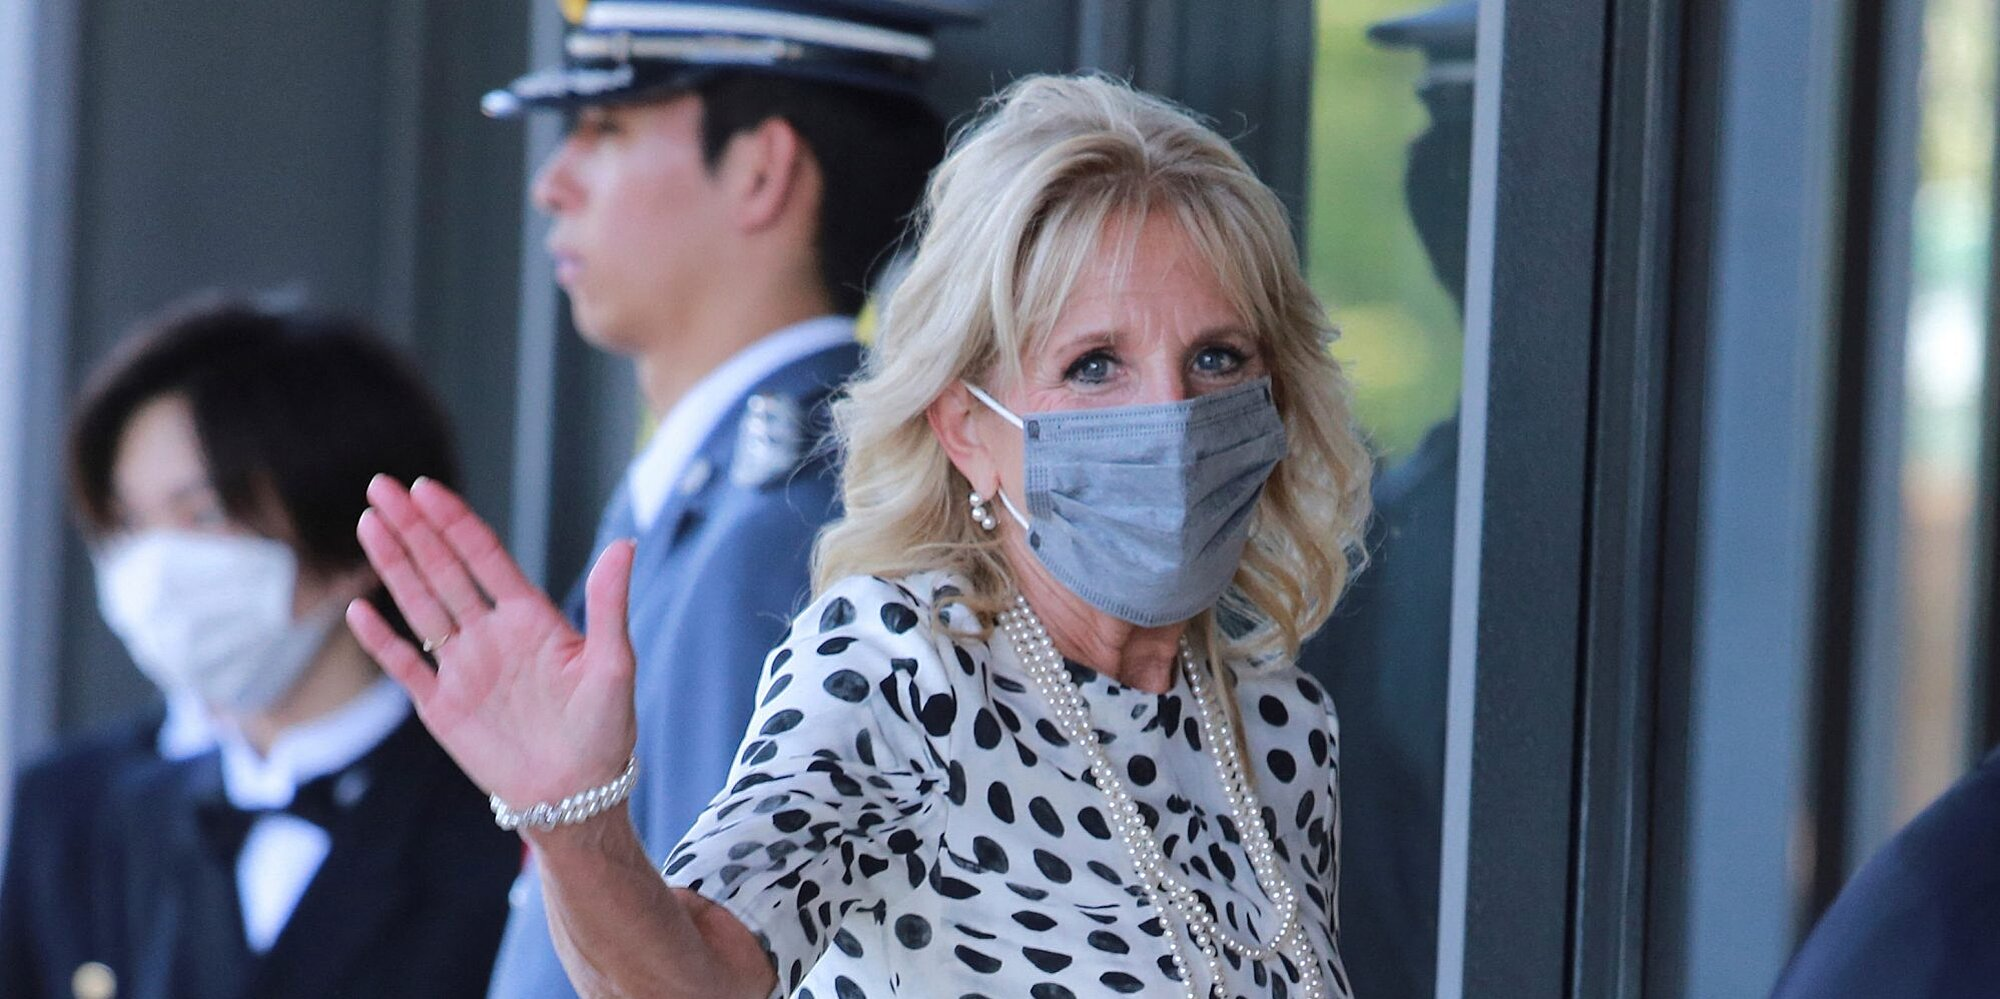 Jill Biden Meets with Emperor Naruhito and Zooms with Team USA Ahead of Tokyo Opening Ceremony.jpg